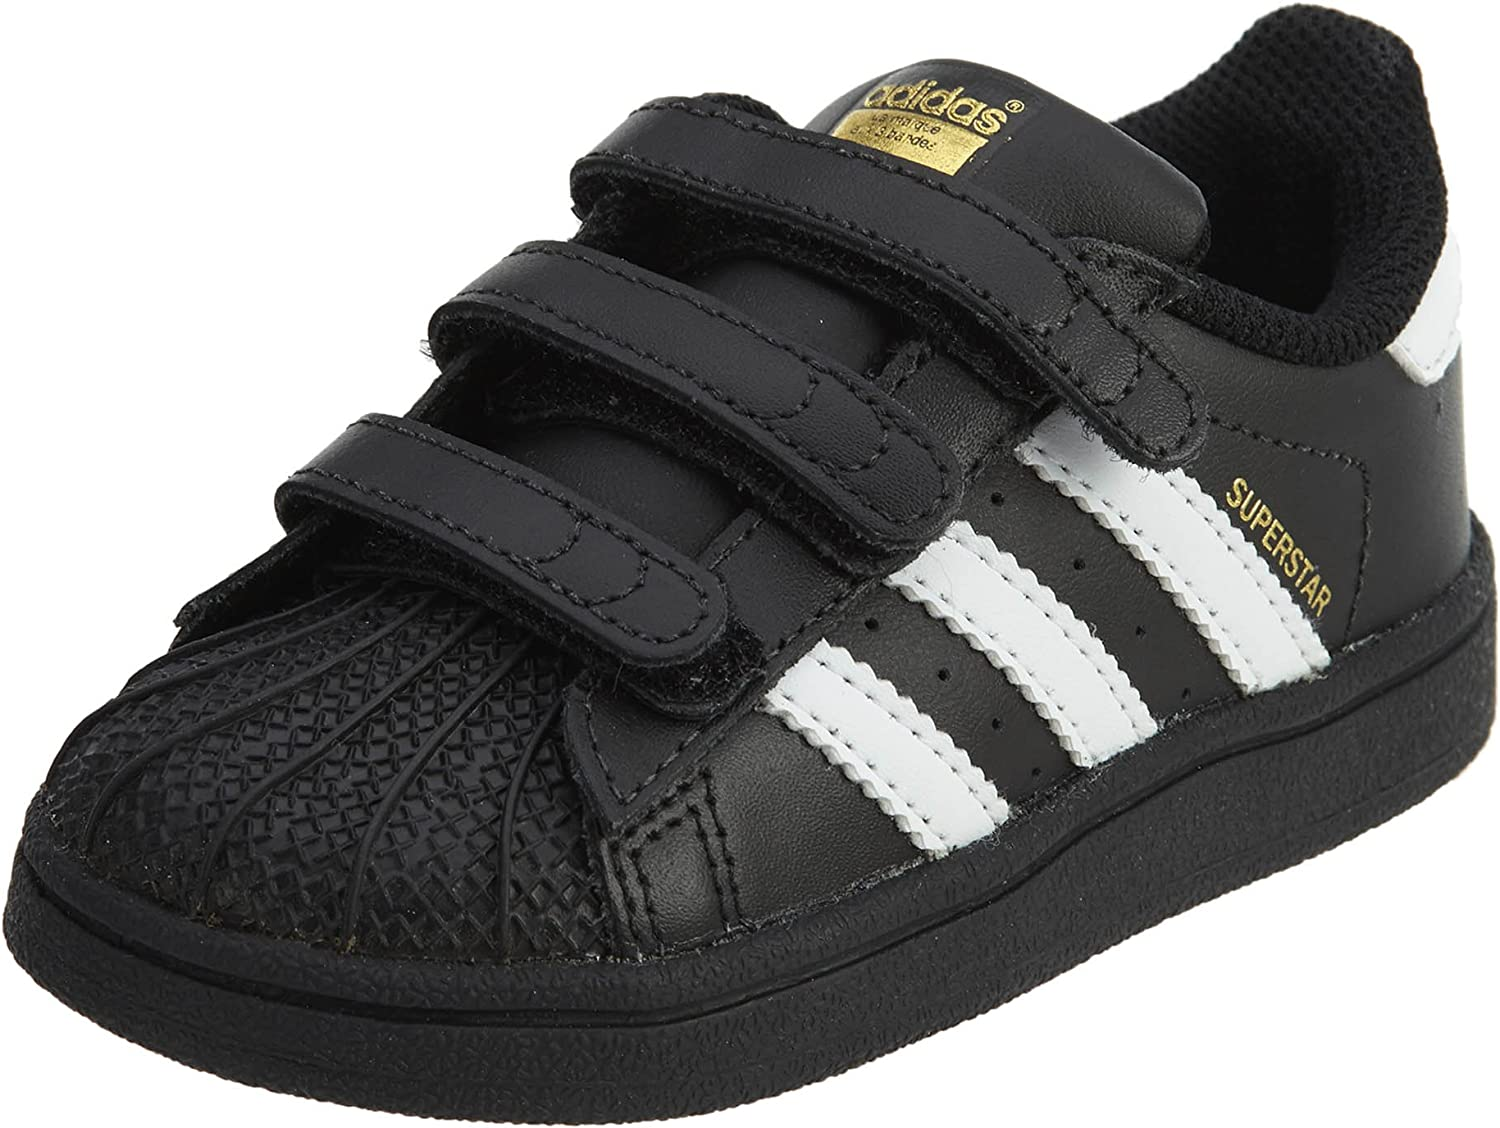 Bangladesh exceso Dirigir  Amazon.com | adidas Infants Originals Superstar Shoes #BZ0419 | Sneakers